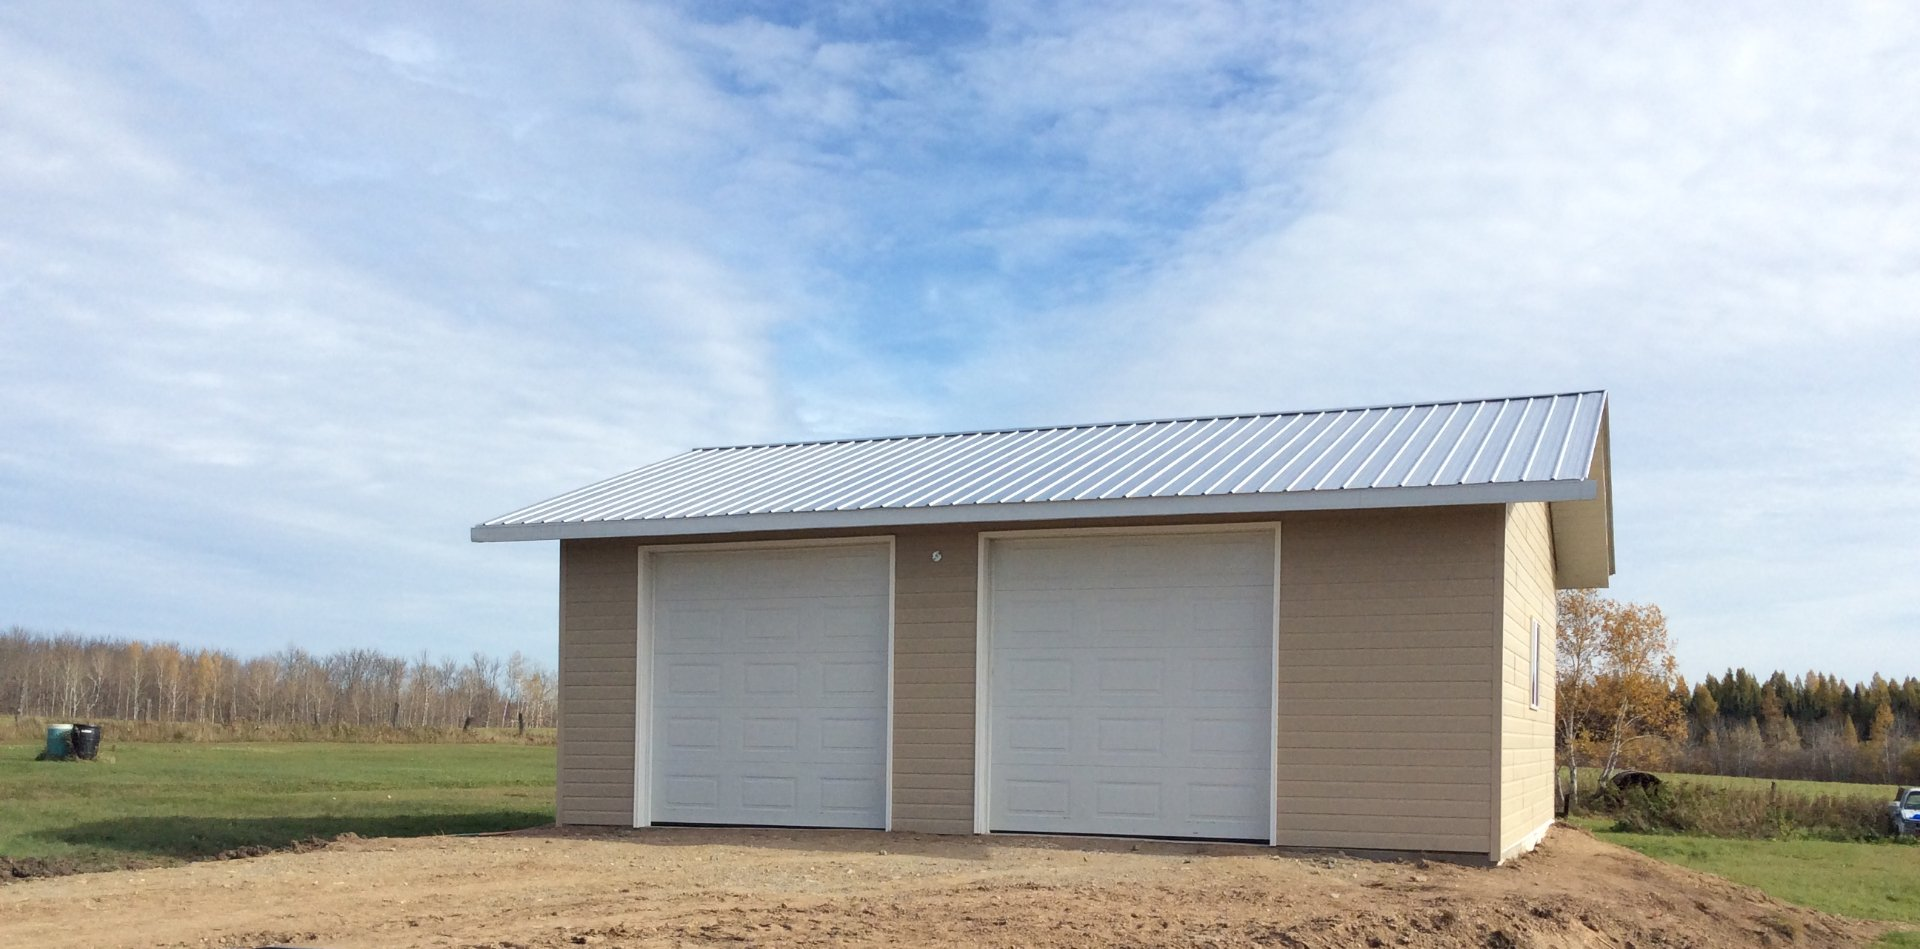 Double garage construction. Suitable for a workshop or parking for vehicles and tractors.